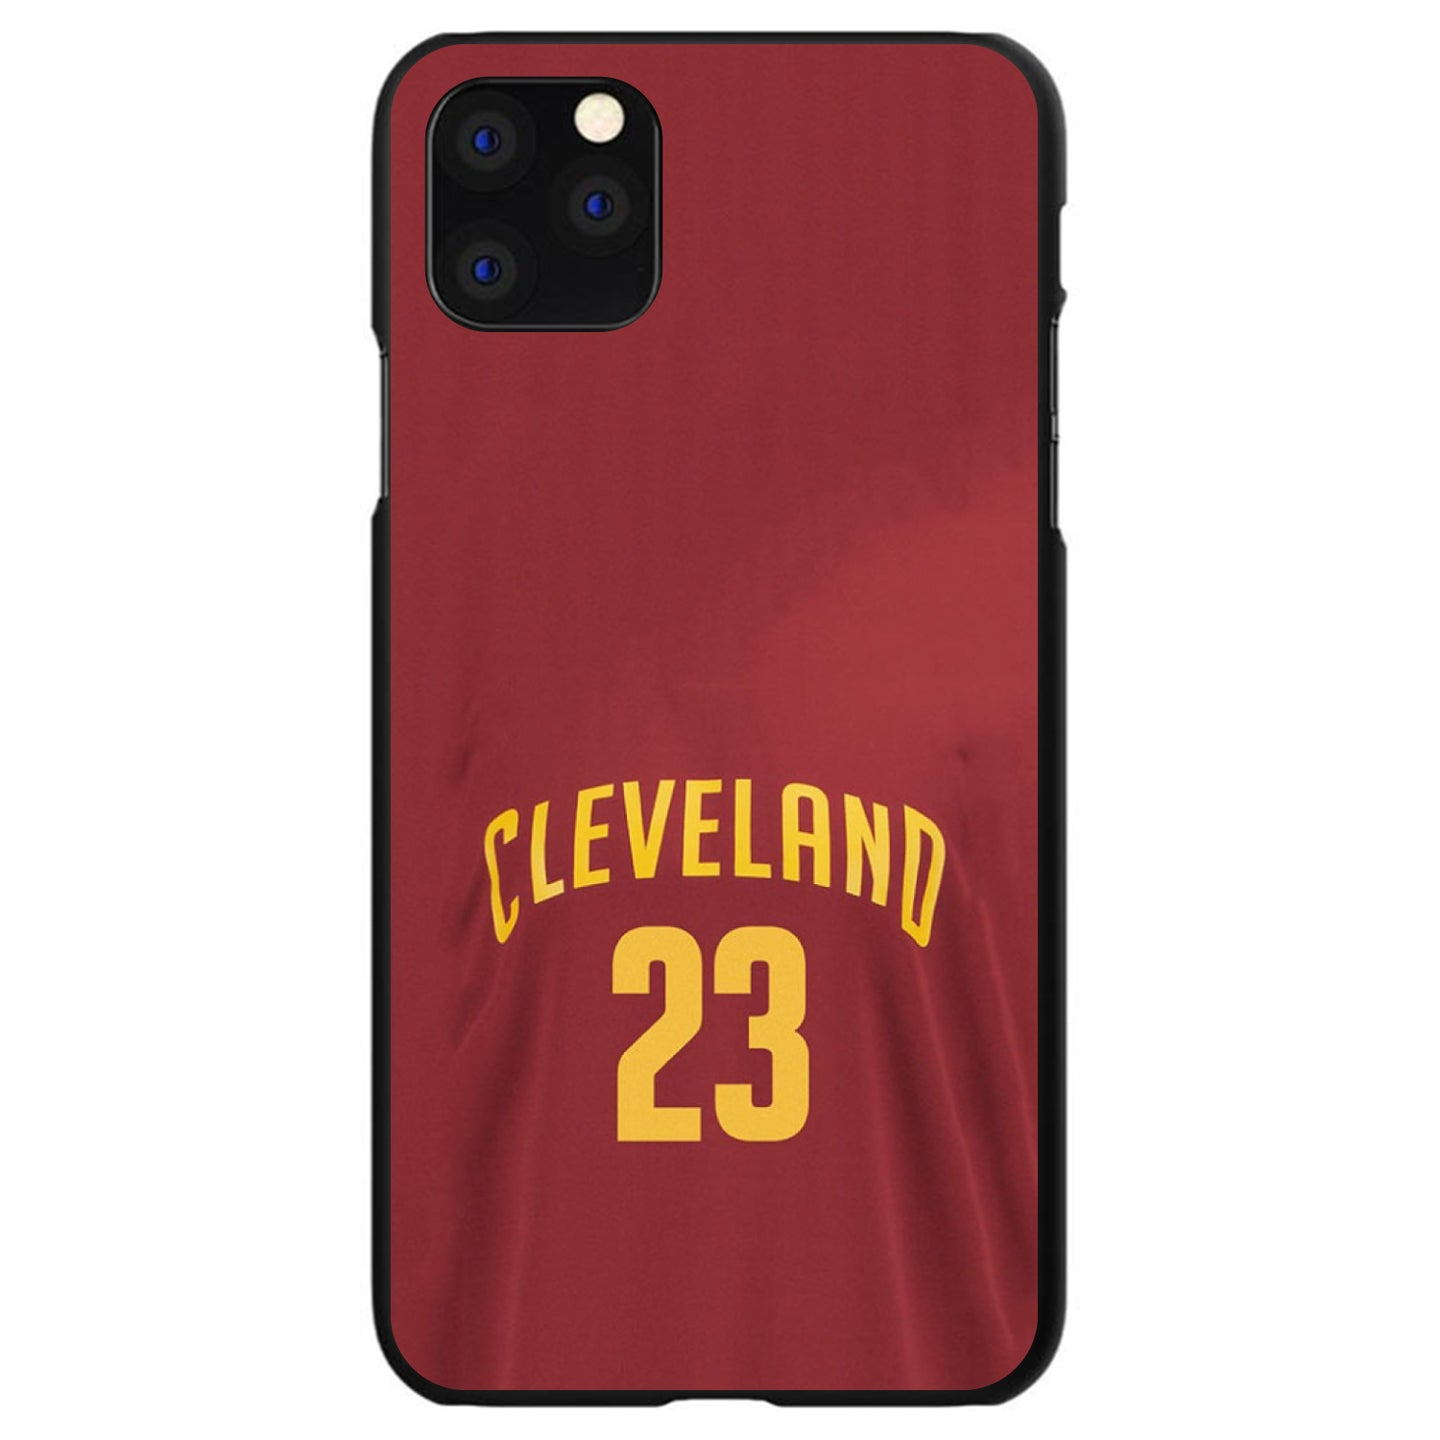 DistinctInk® Hard Plastic Snap-On Case for Apple iPhone - Cleveland 23 Jersey